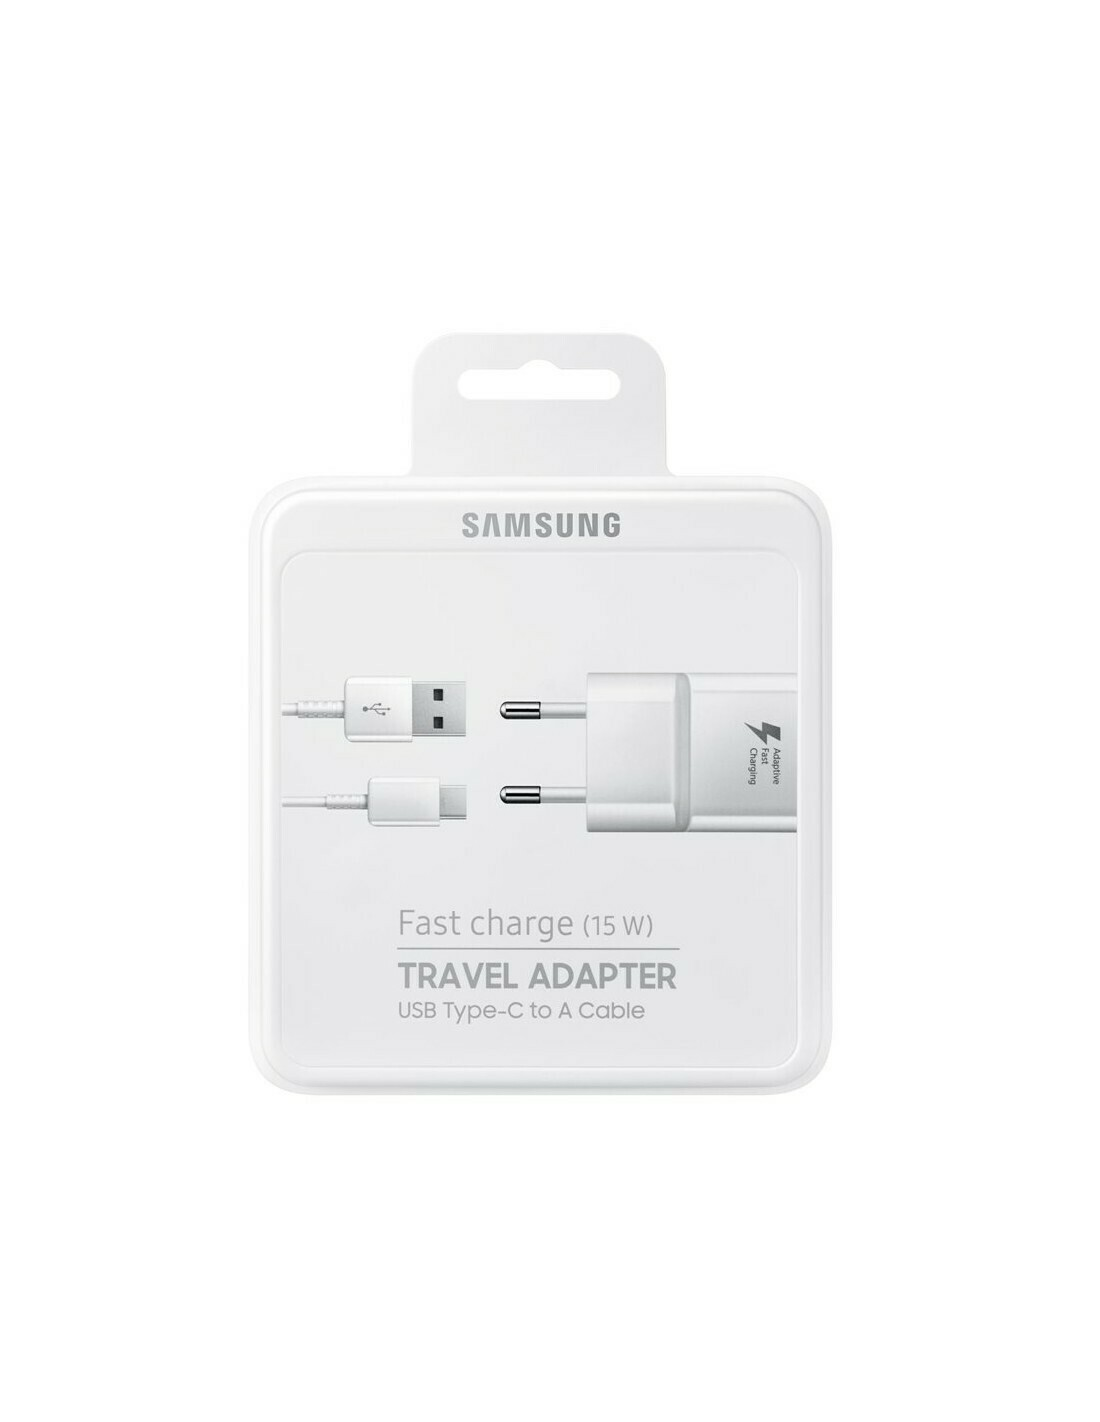 Caricatore Fast charge 15w samsung travel adapter usb type-c to A cable